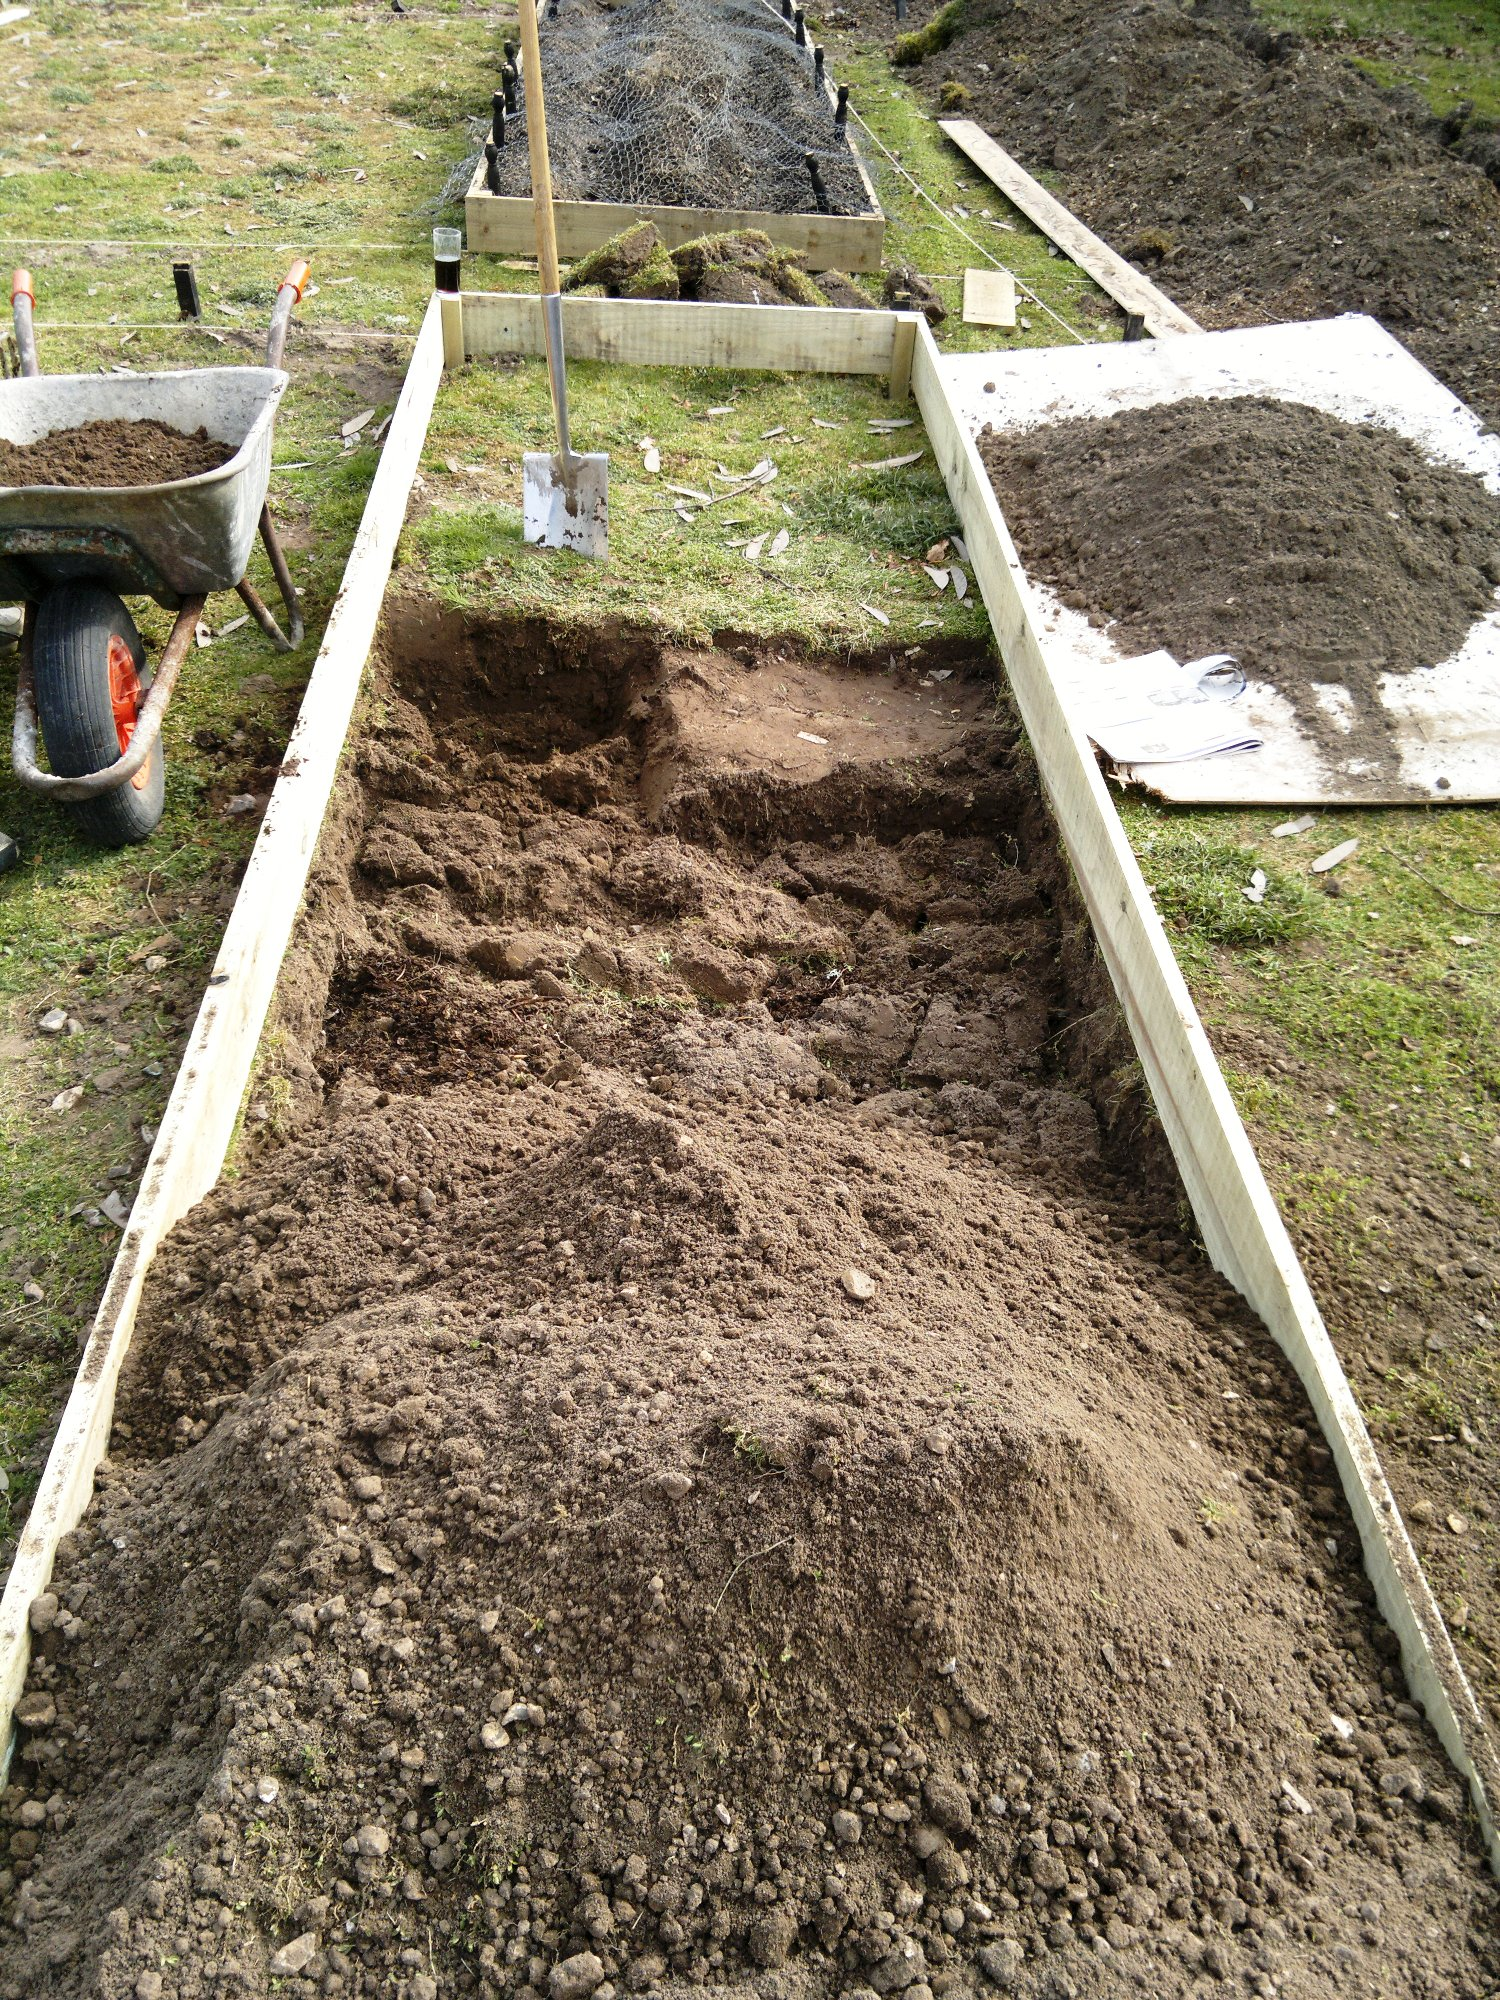 Halfway through the second bed, the first, planted with potatoes, is just visible in the background